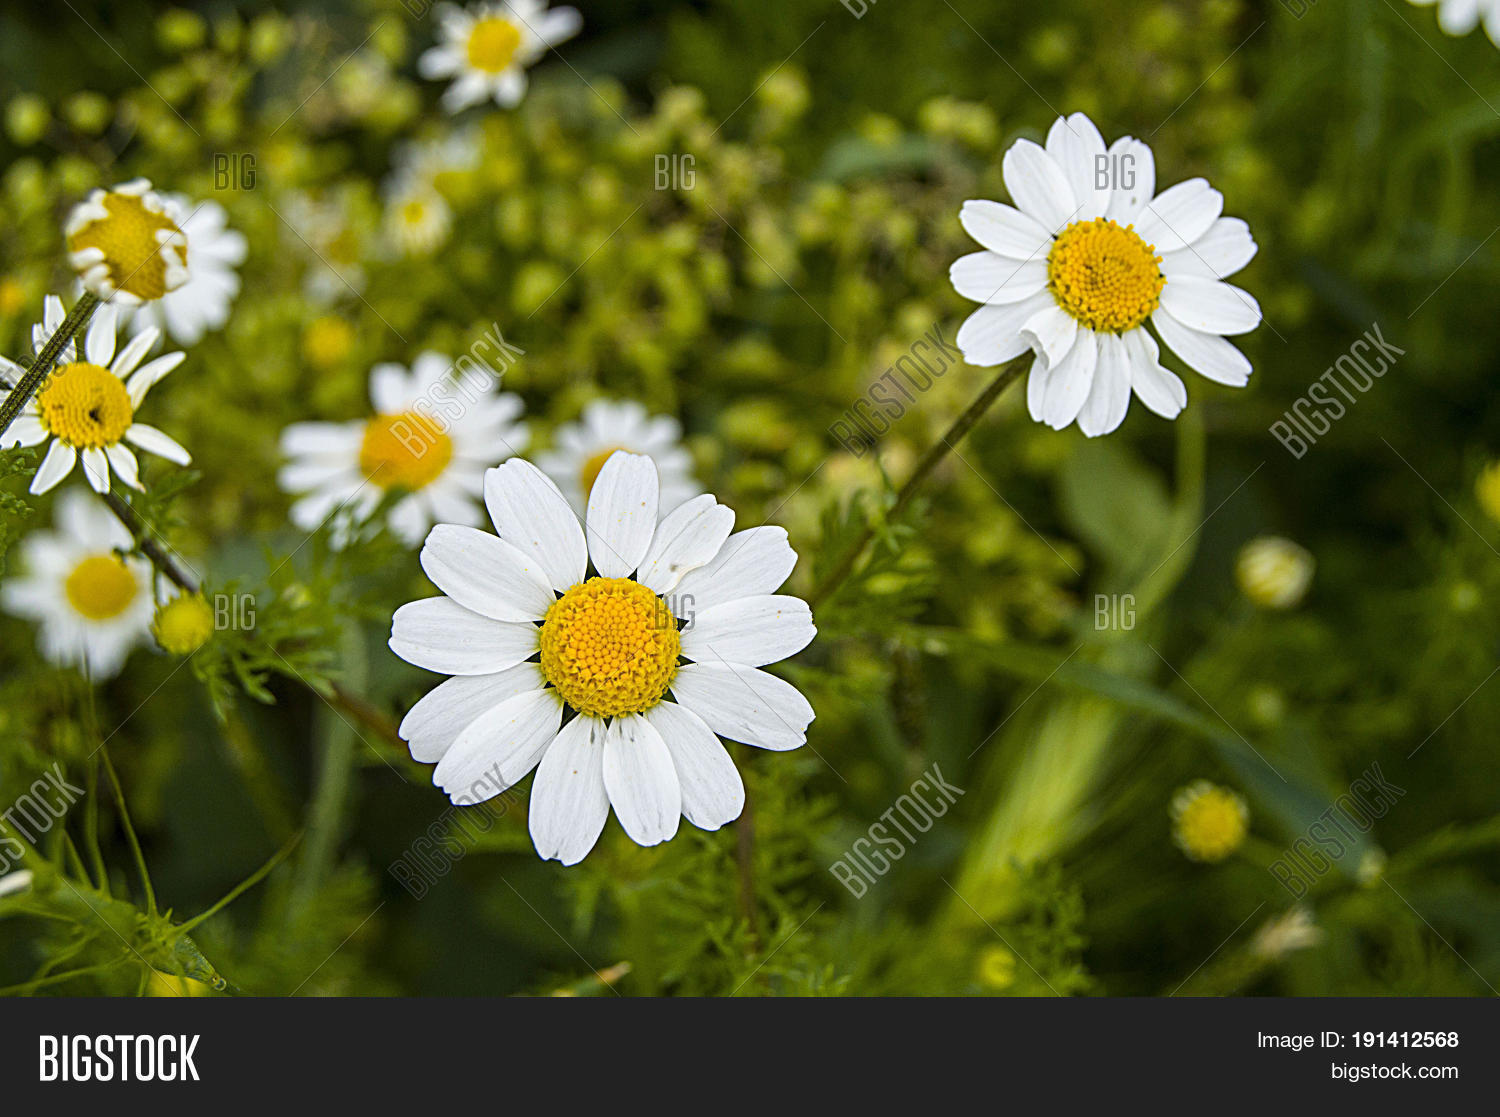 Daisy Flowers Image Photo Free Trial Bigstock